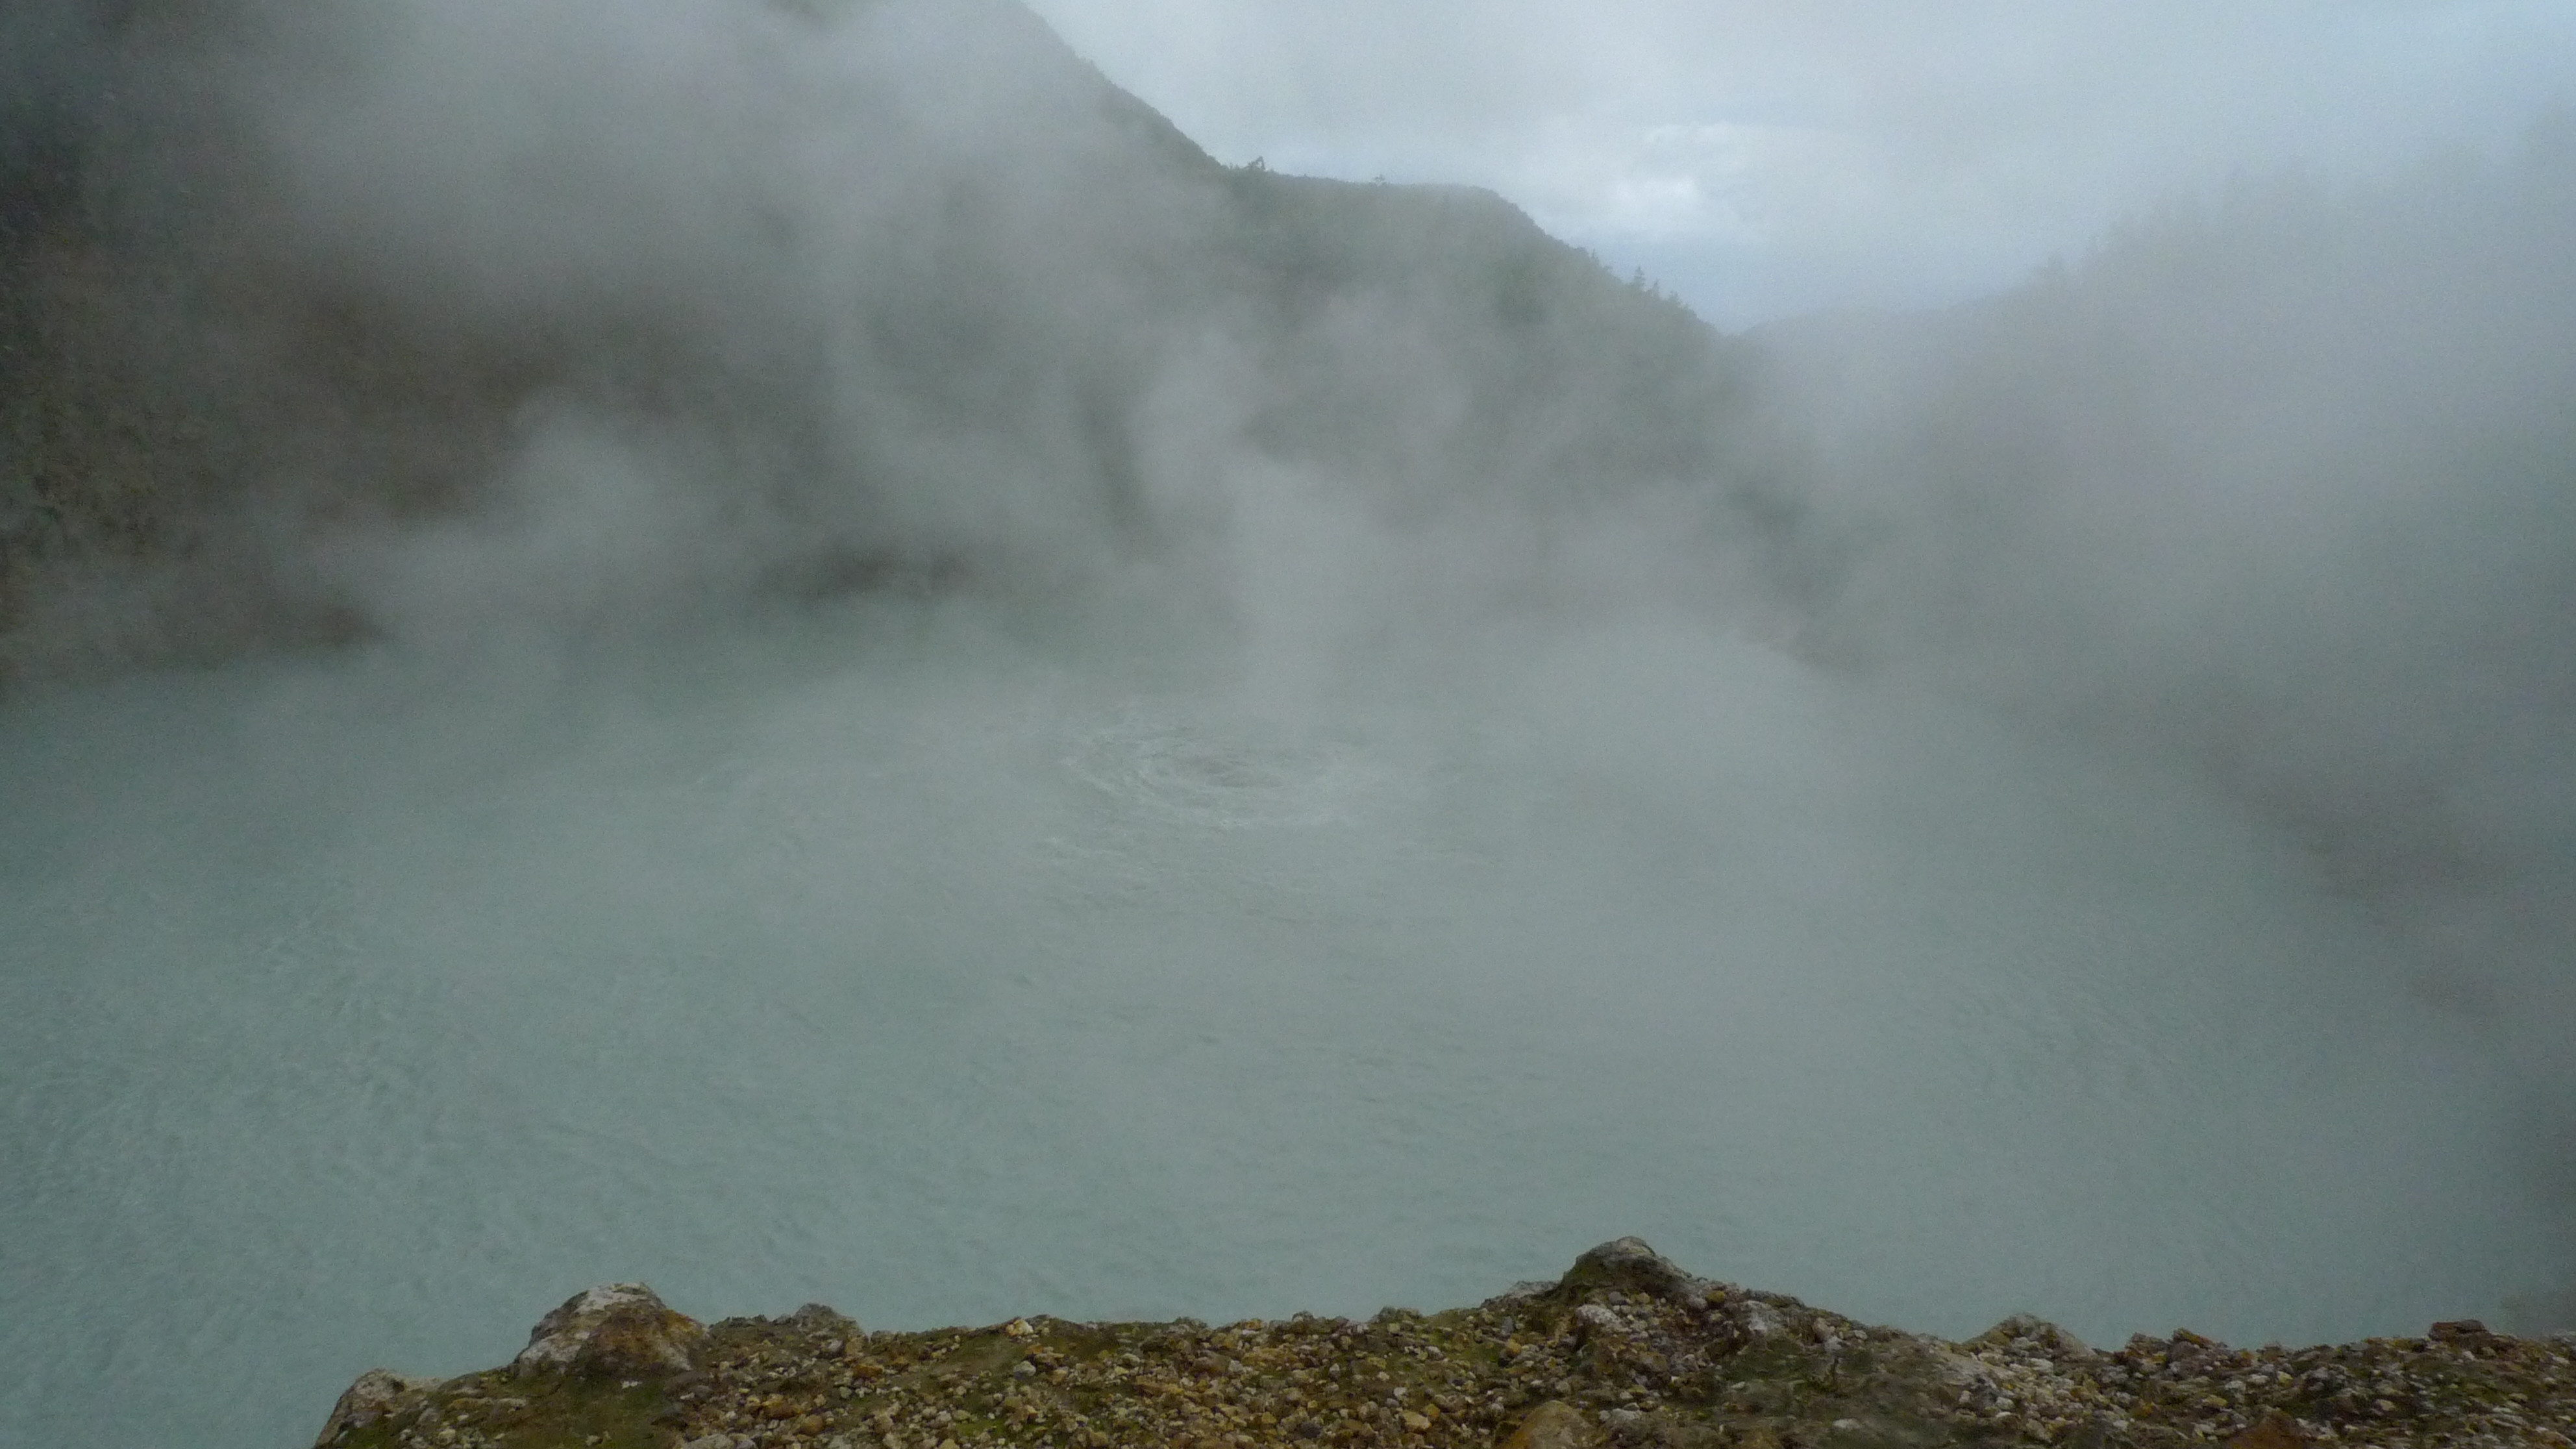 The Boiling Lake and Titou Gorge